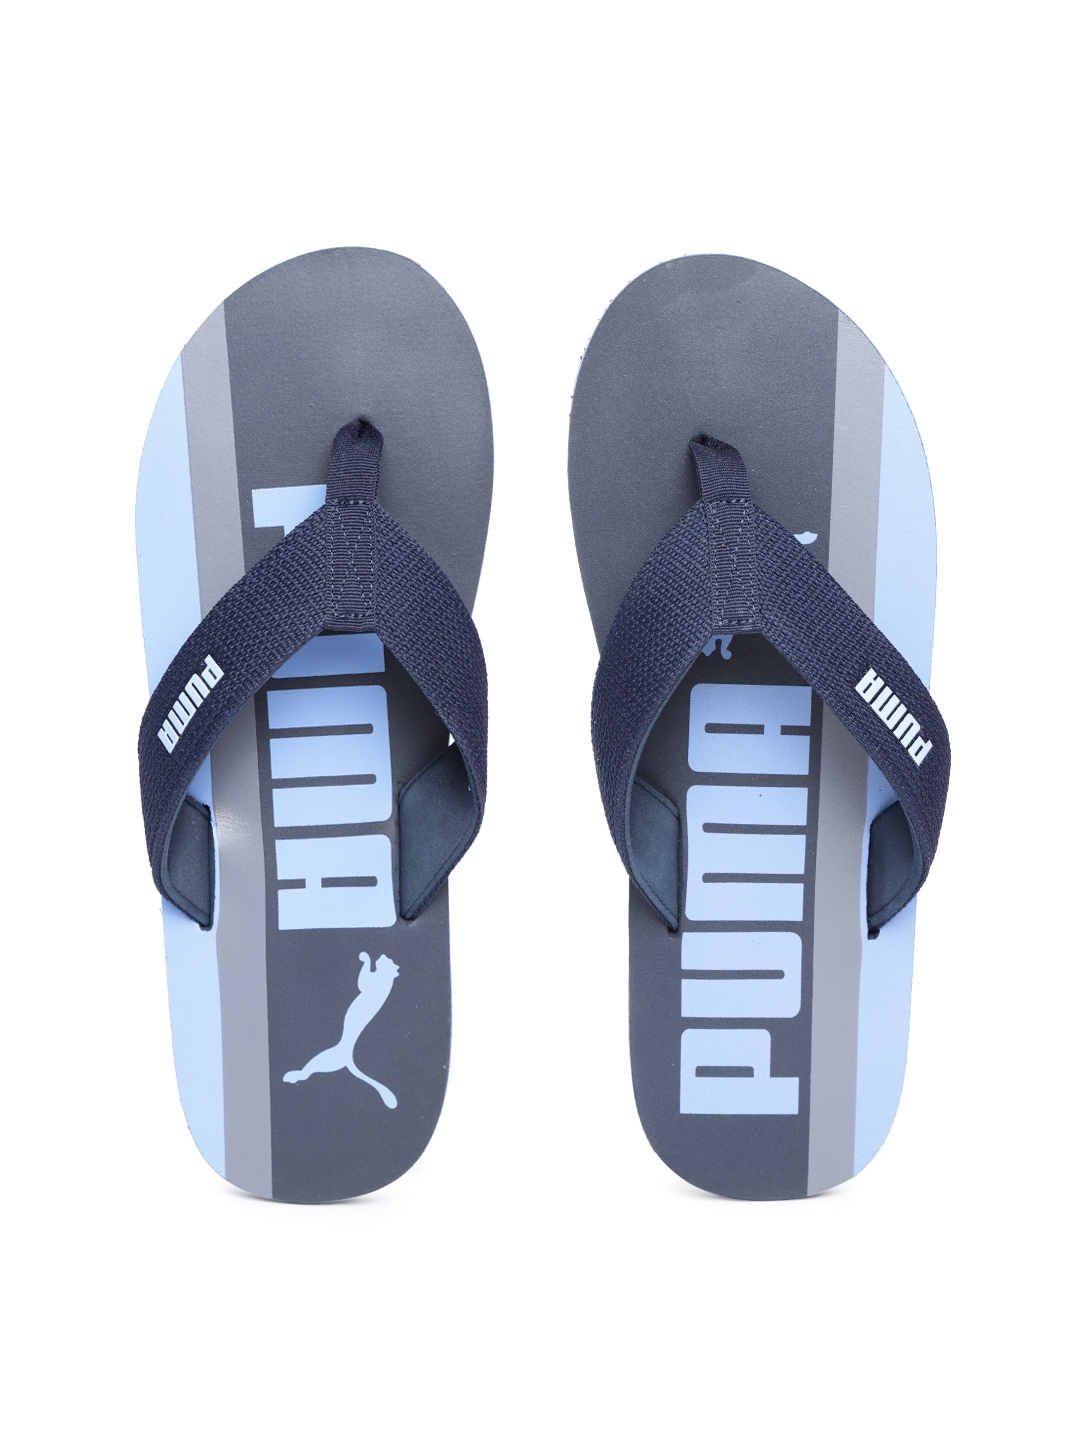 42828bbabf3c Flip Flops for Men - Buy Slippers   Flip Flops for Men Online